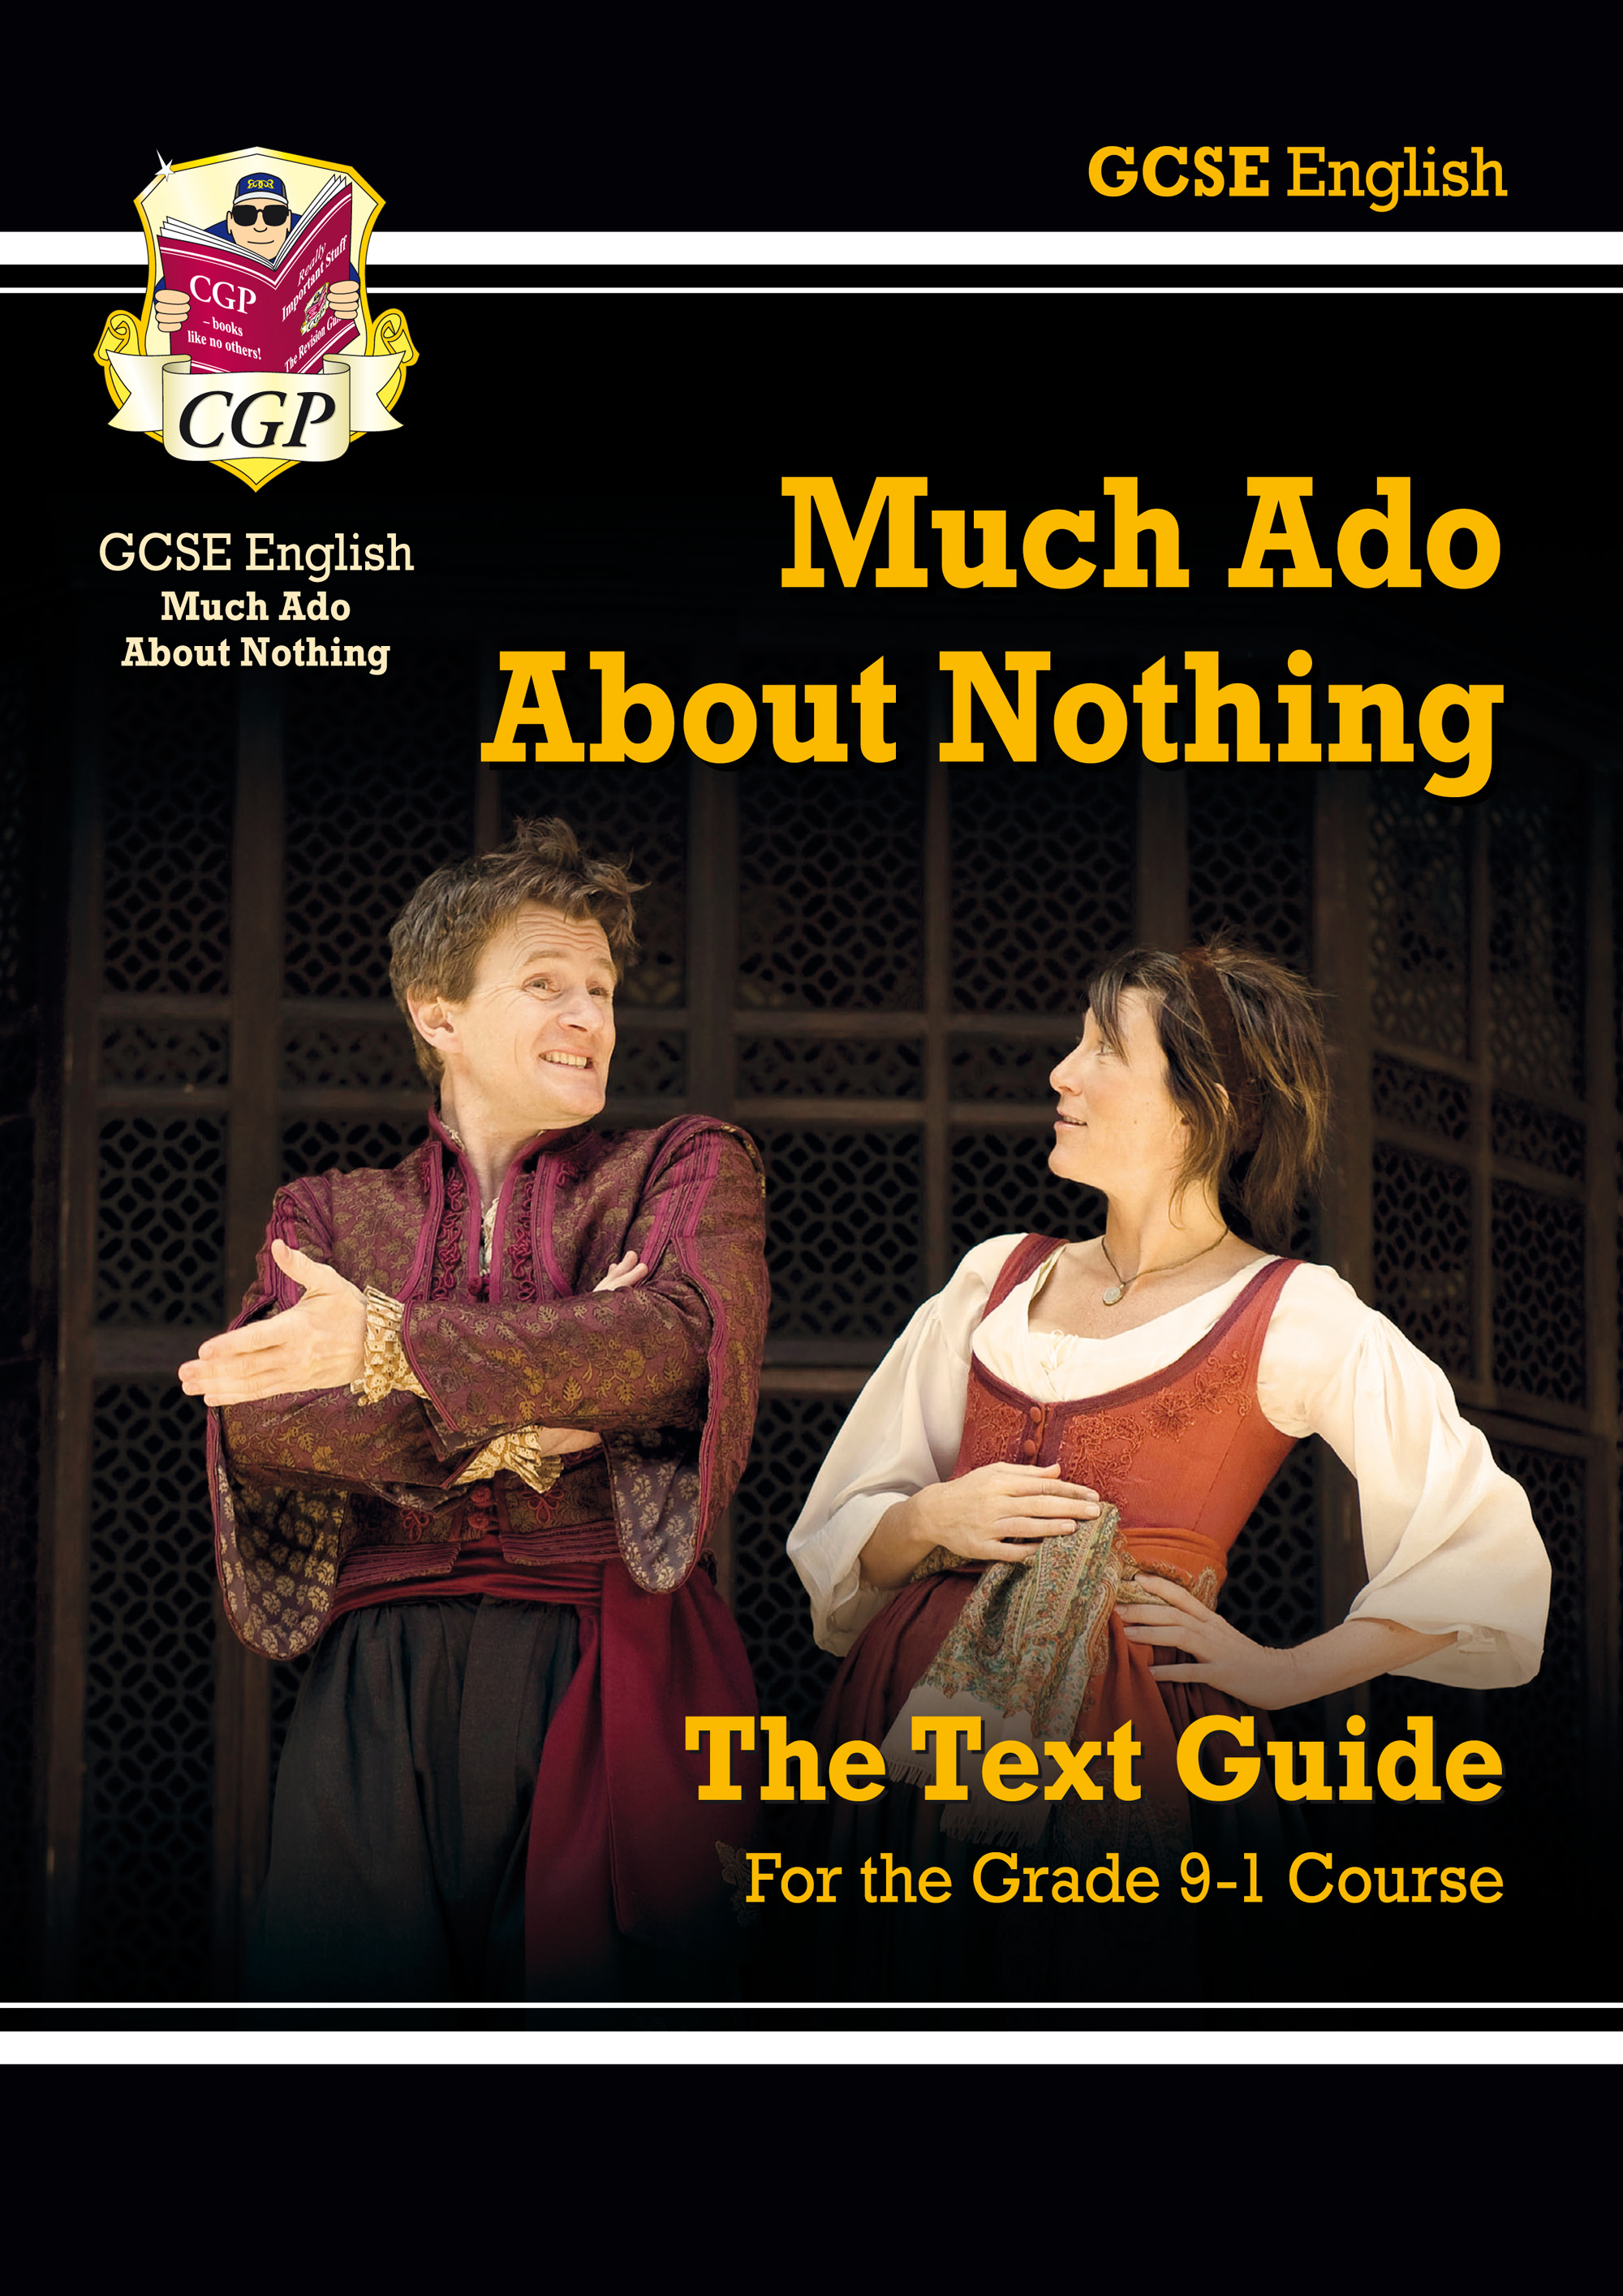 ETMA41 - Grade 9-1 GCSE English Shakespeare Text Guide - Much Ado About Nothing